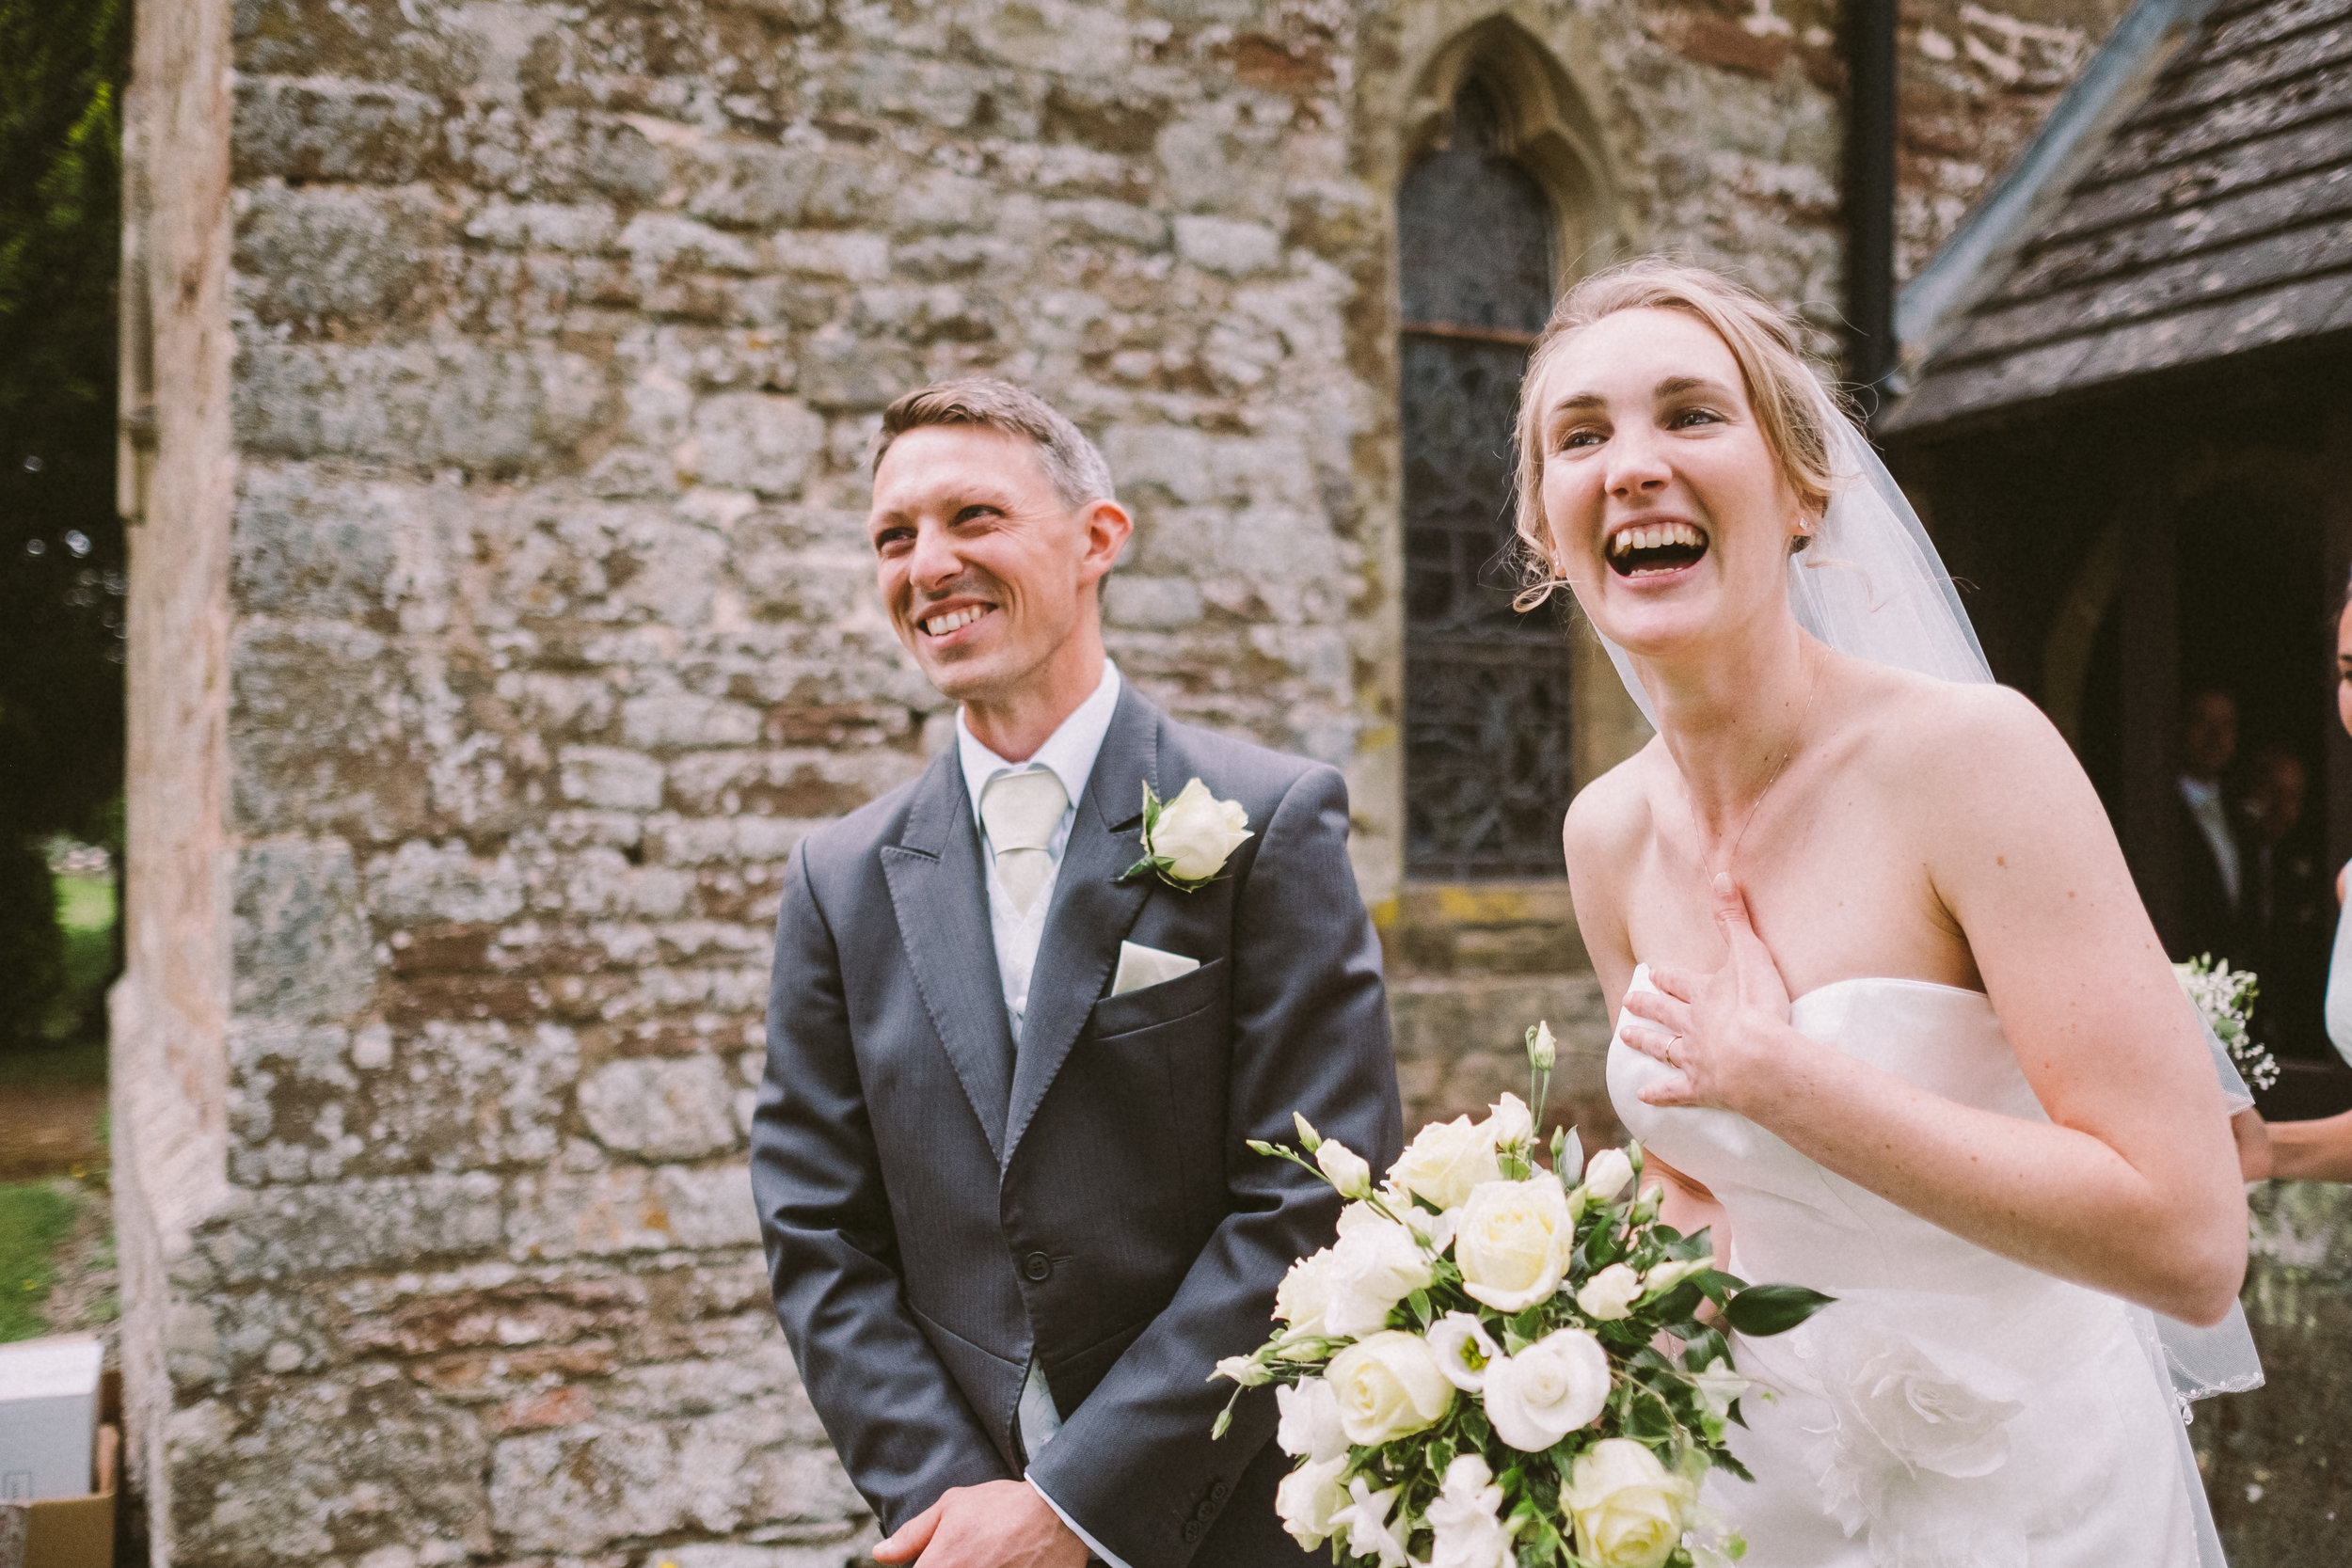 All the smiles at this wonderful wedding!